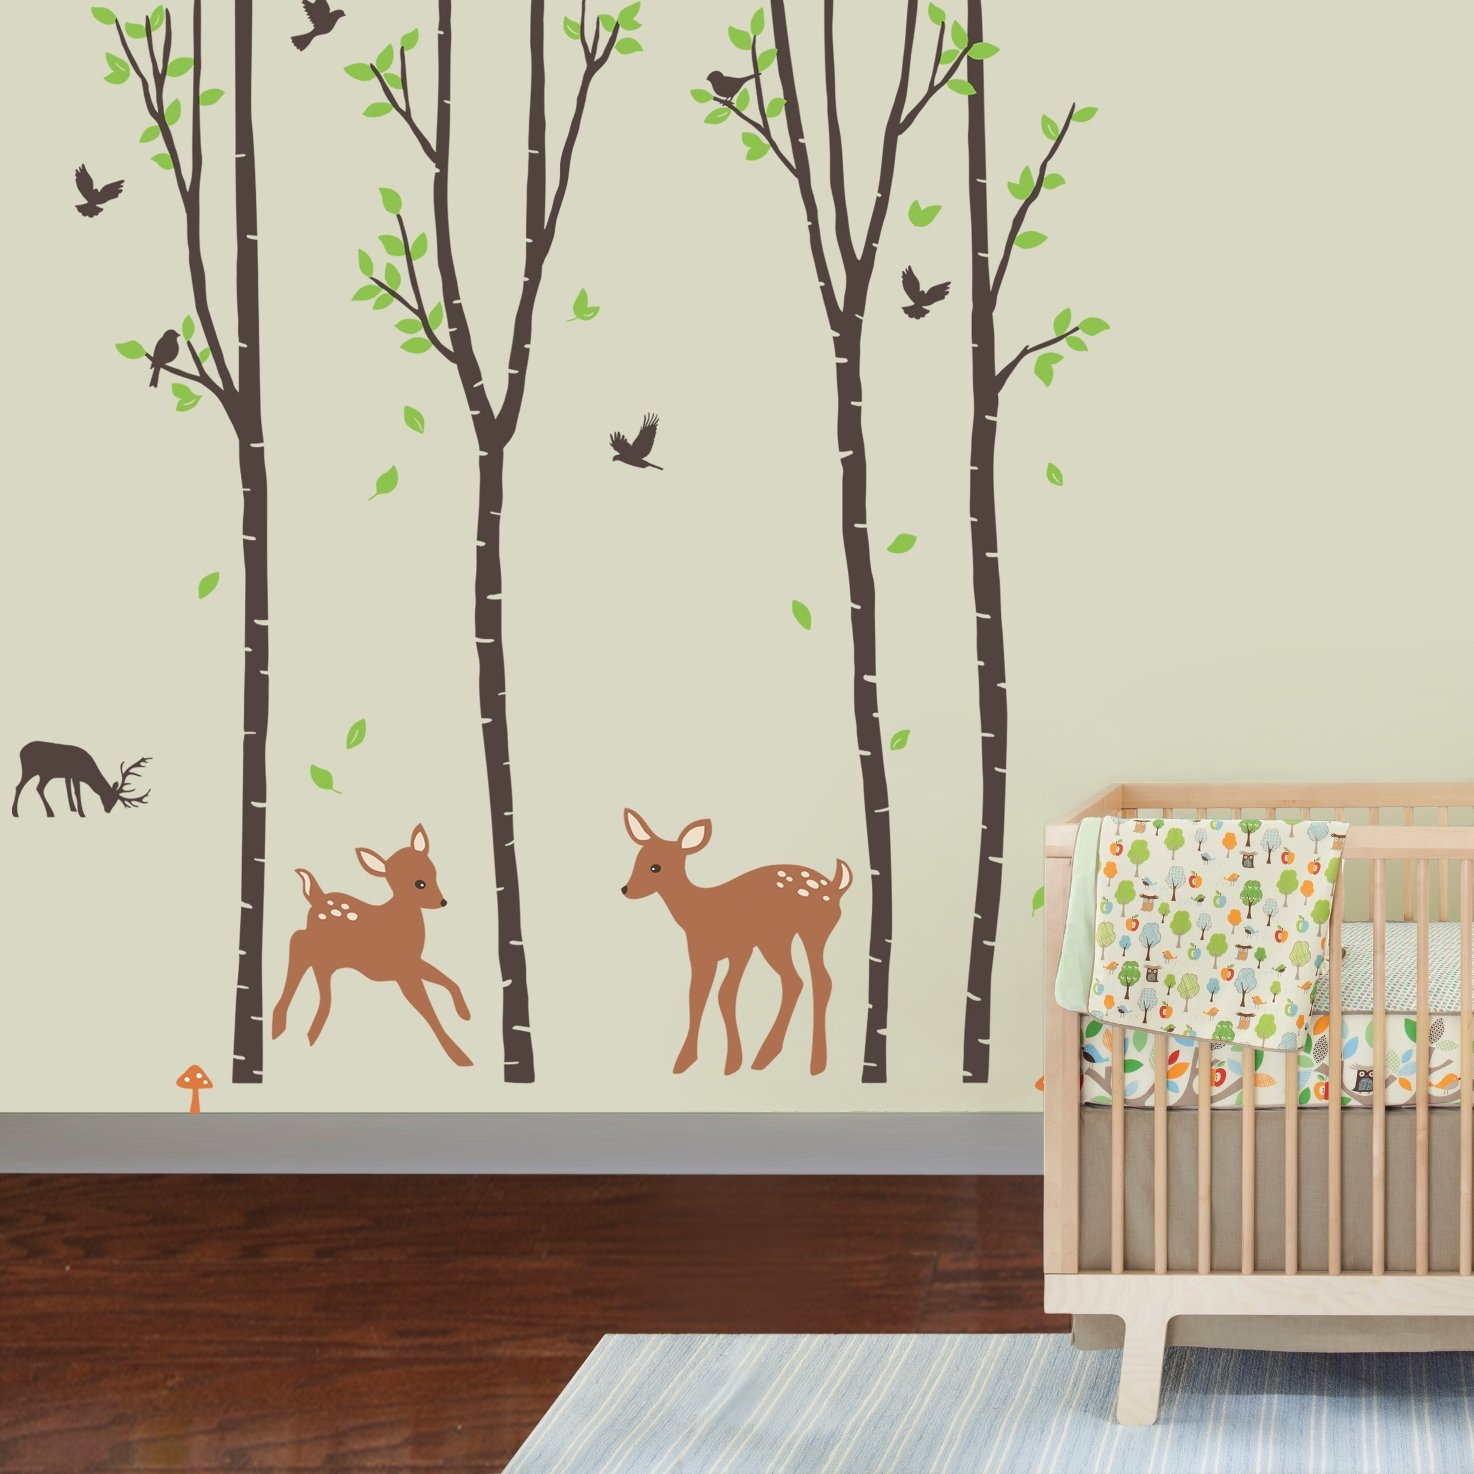 Amazoncom Giant Wall Sticker Decals Birch Tree Forest With - Nursery wall decals jungle